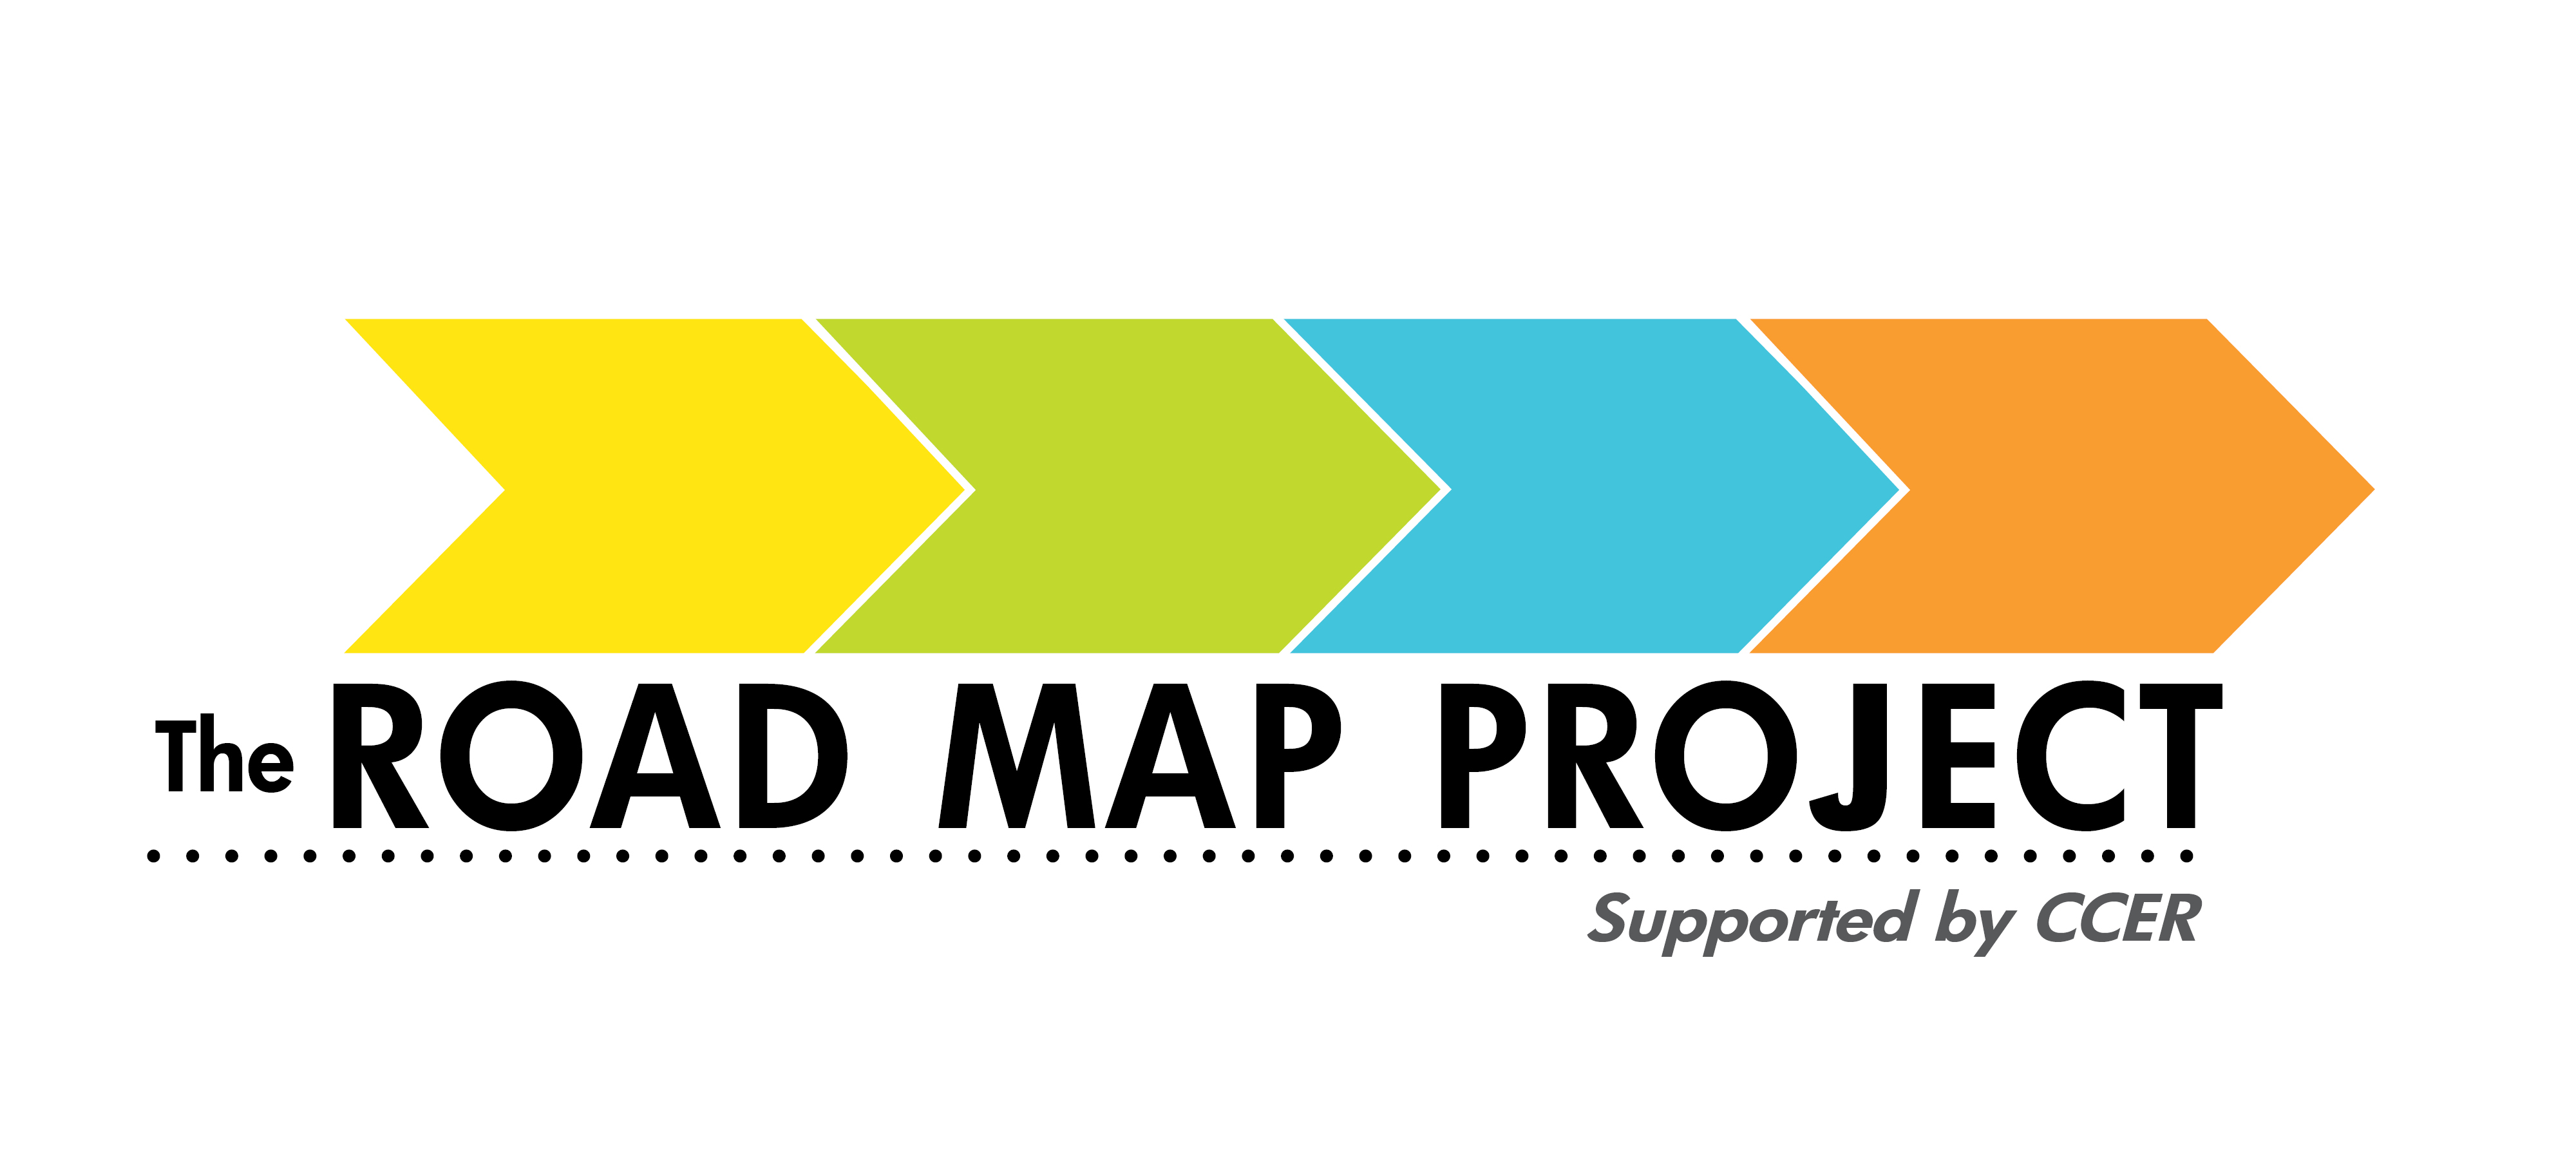 The Road Map Project